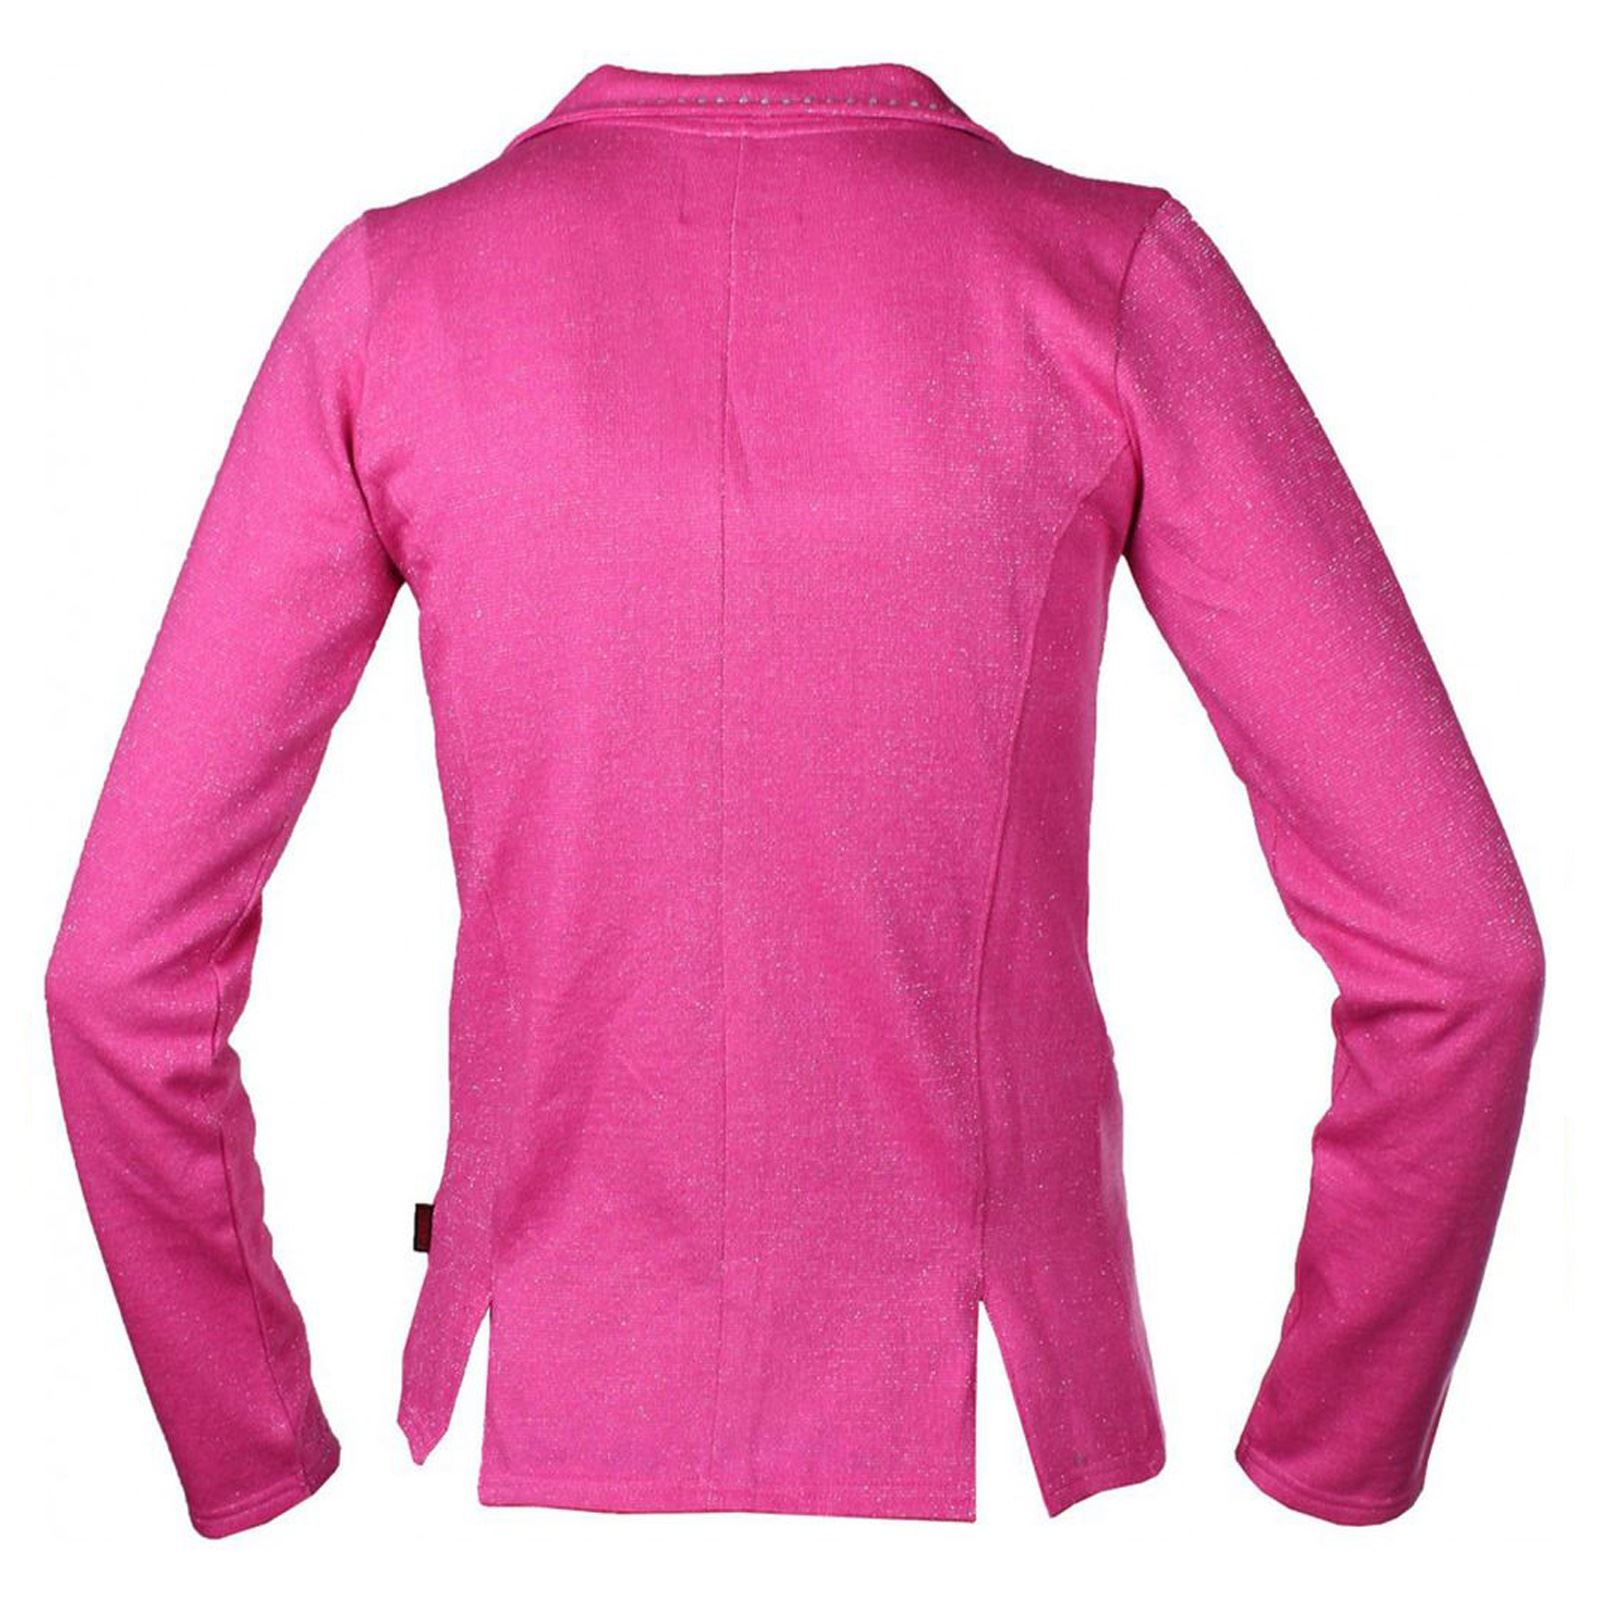 Red Horse Ladies Hippique Comfortable Show Jumping Riding Competition Jacket Ebay